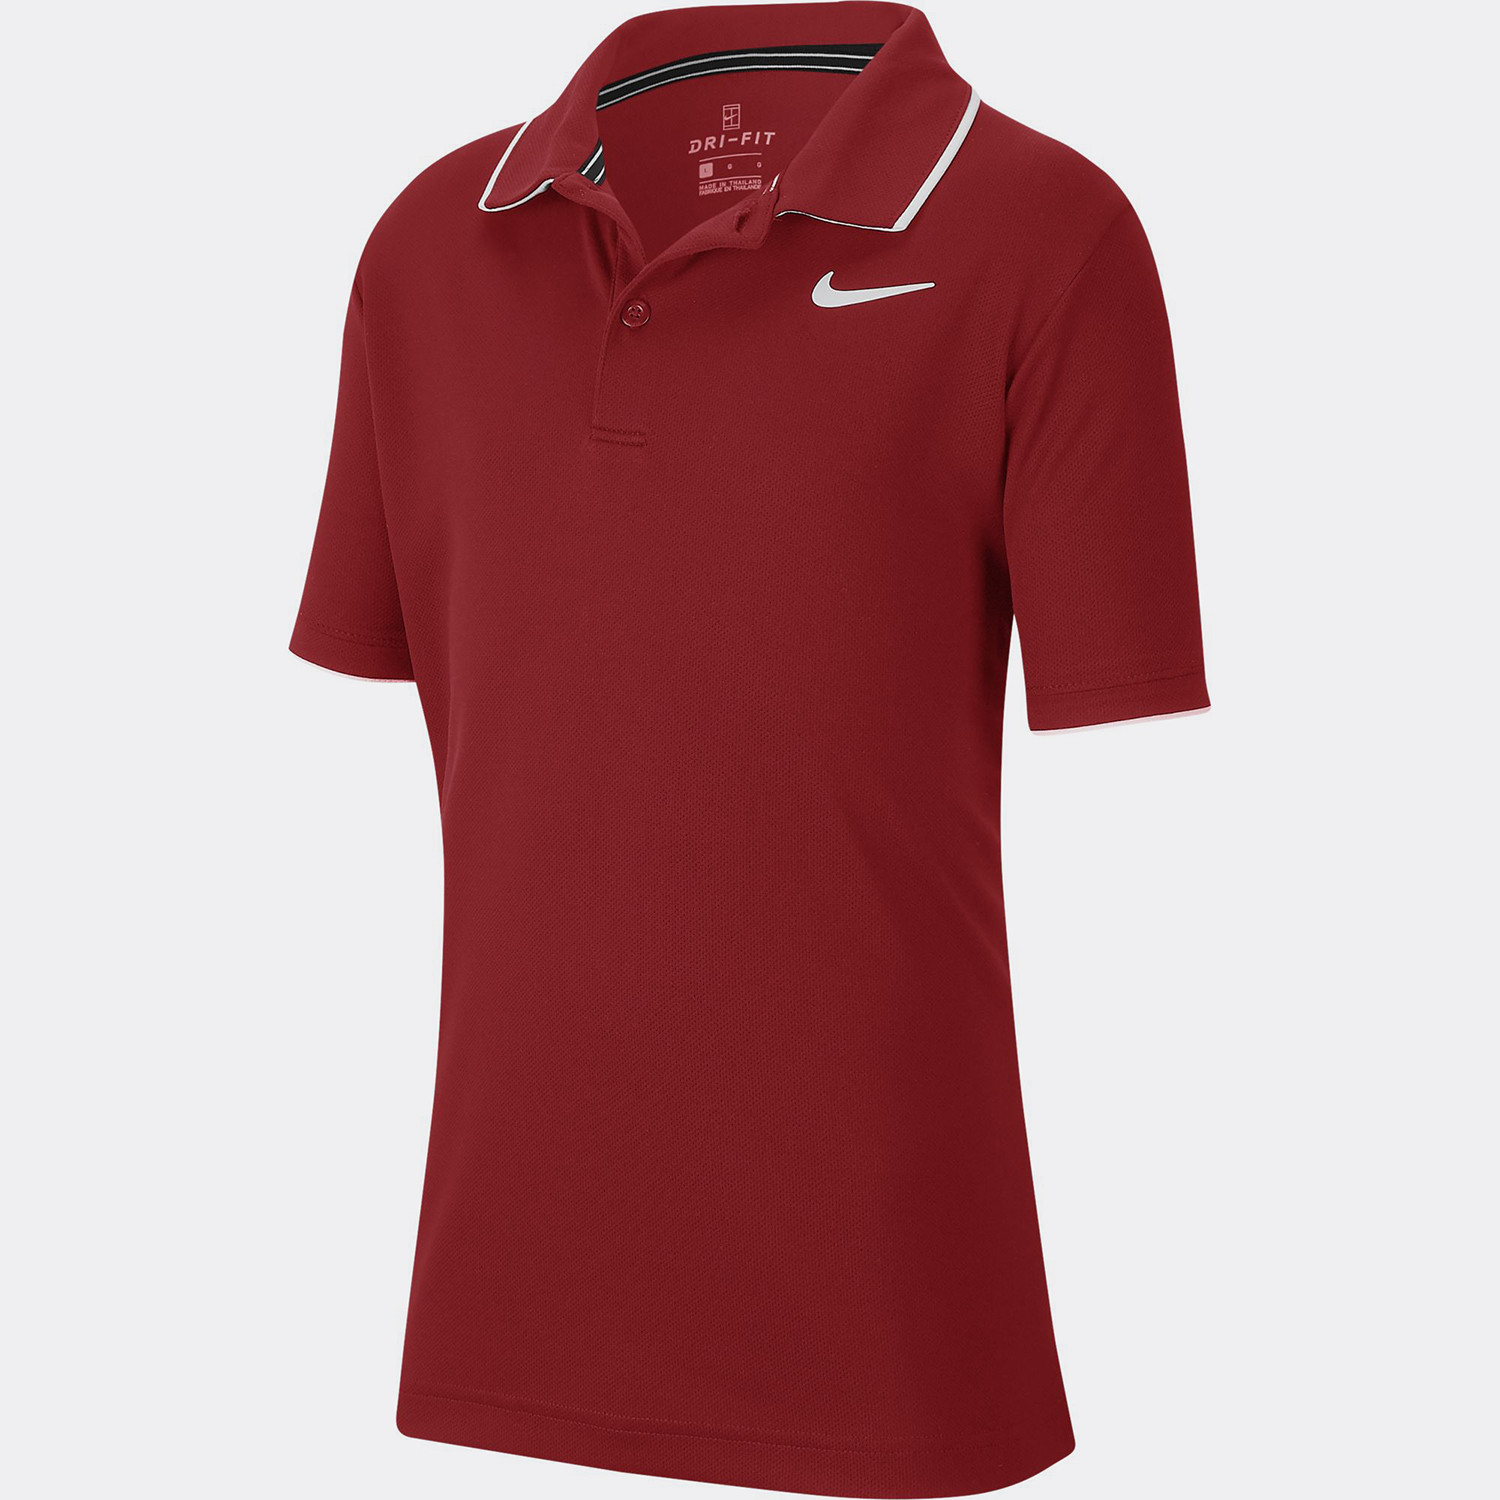 Nike Court Dri-Fit Boy's Tennis Tee (9000043664_28772)